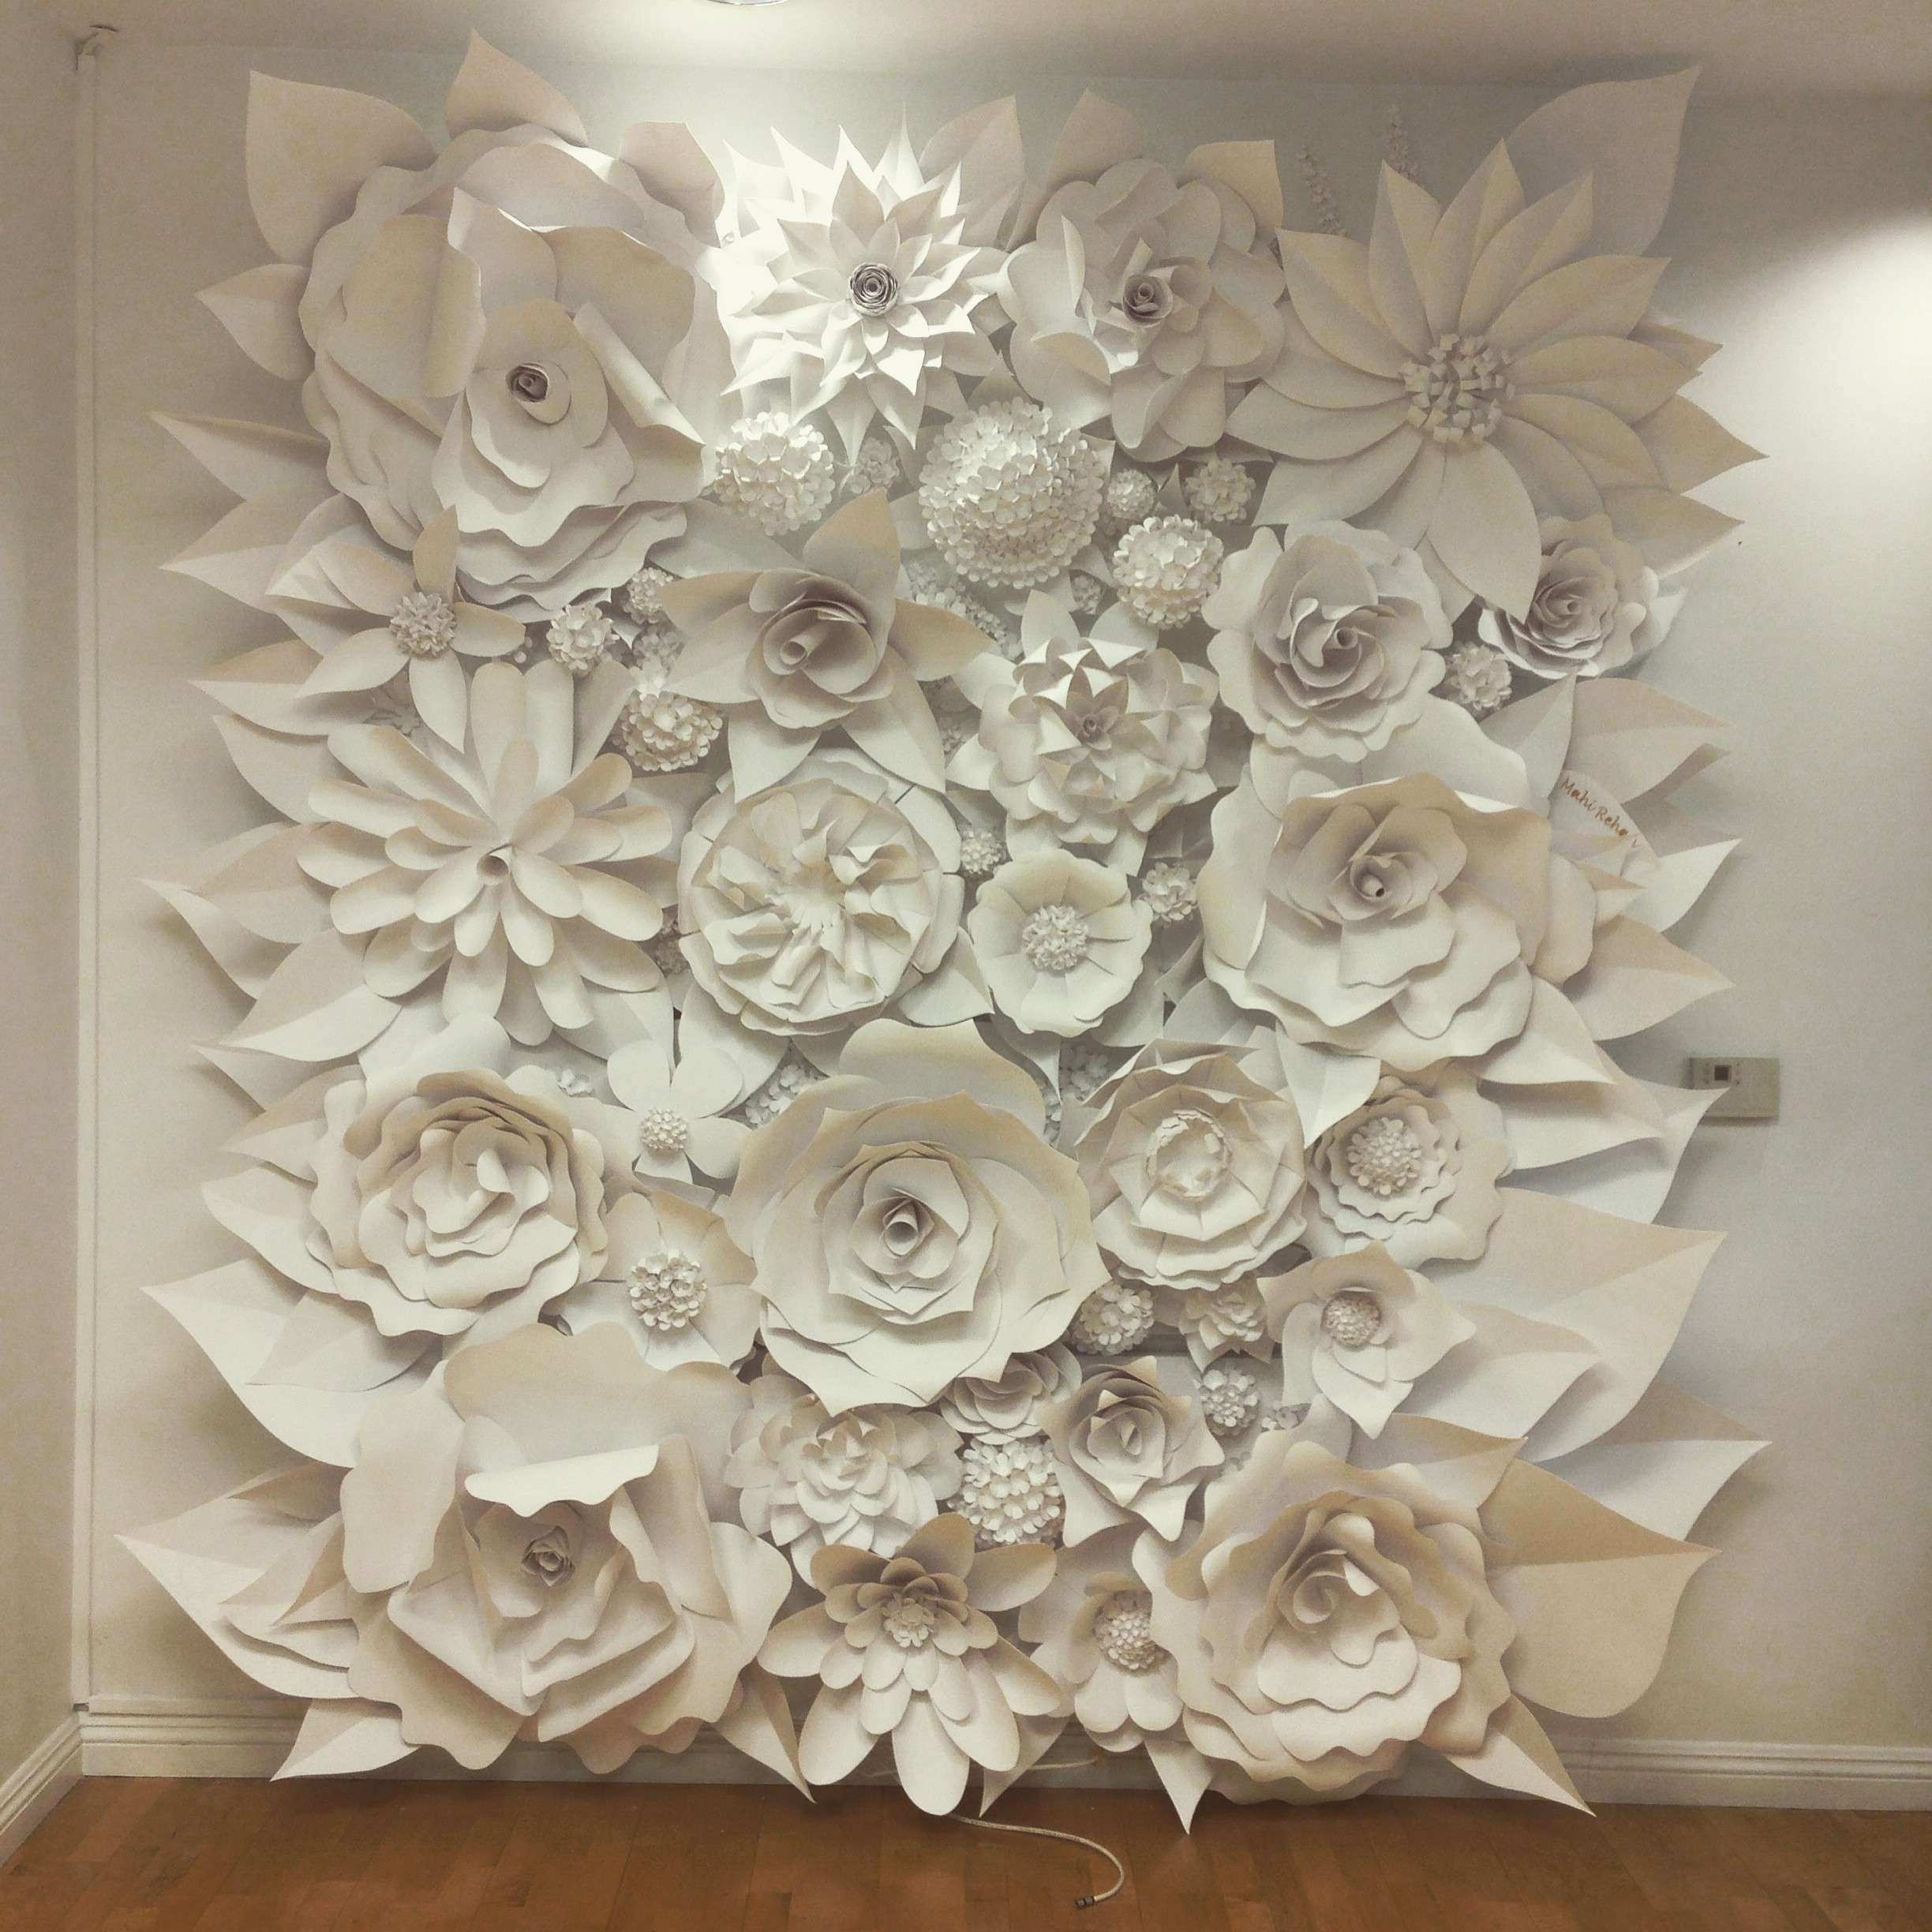 wall decor Floral Wall Decor How To Make A Flower Wall Hanging